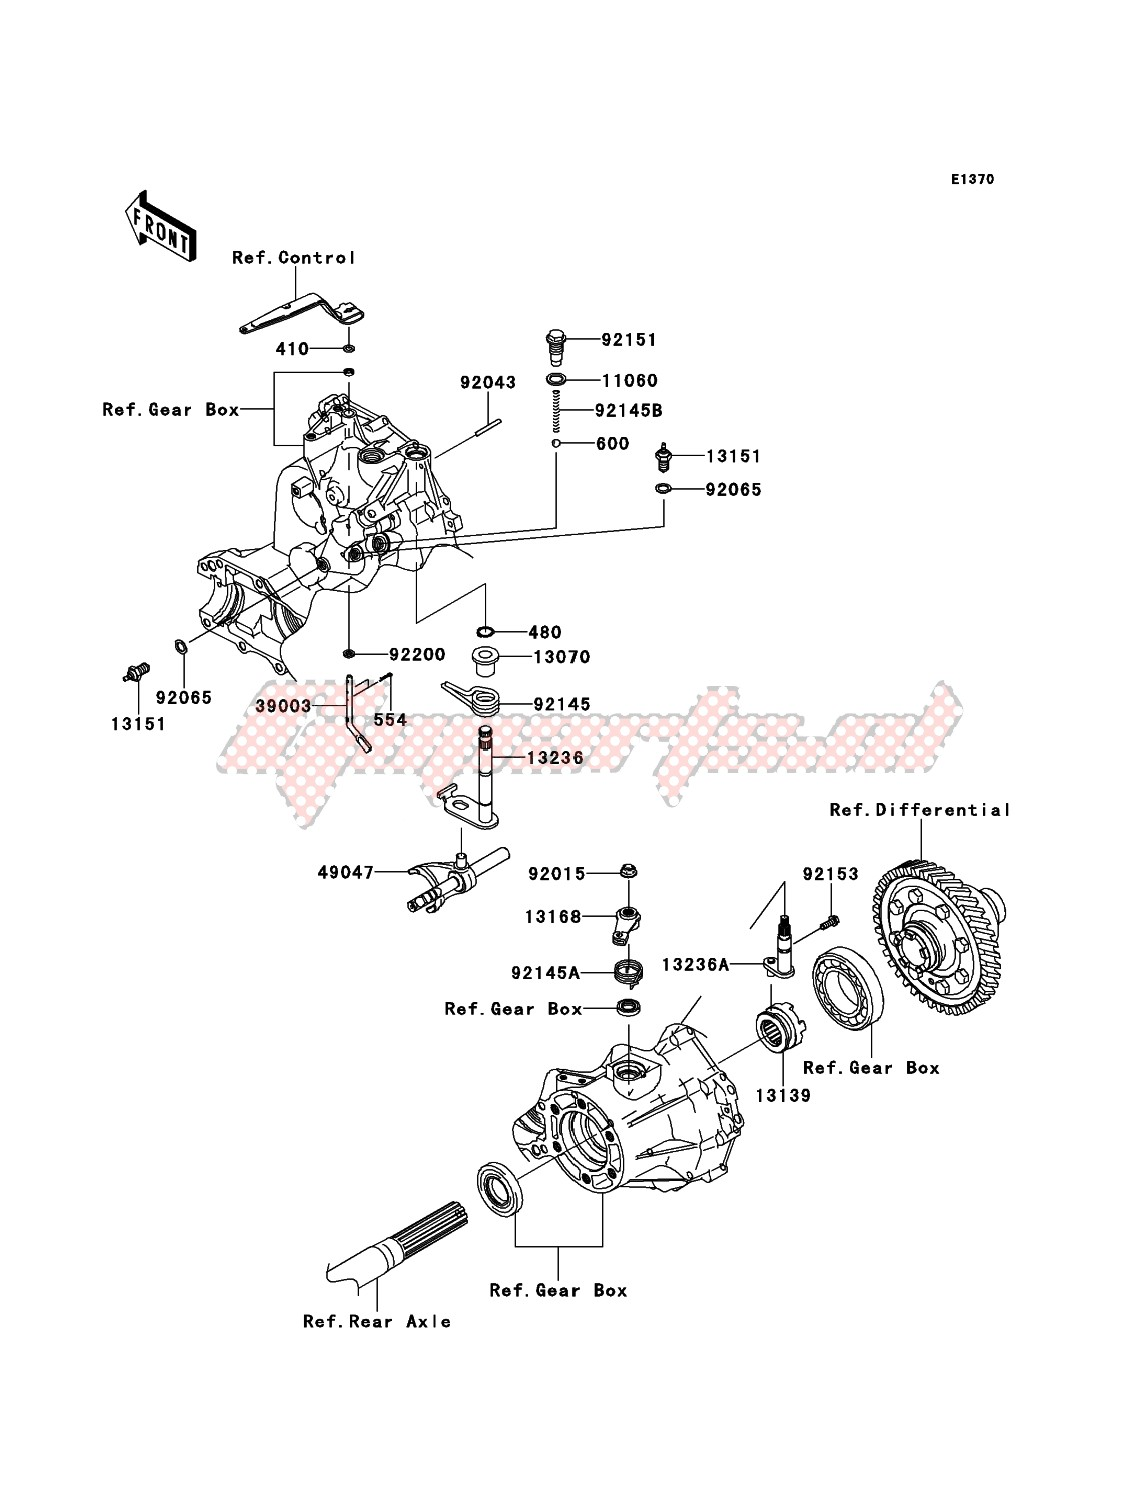 Gear Change Mechanism image